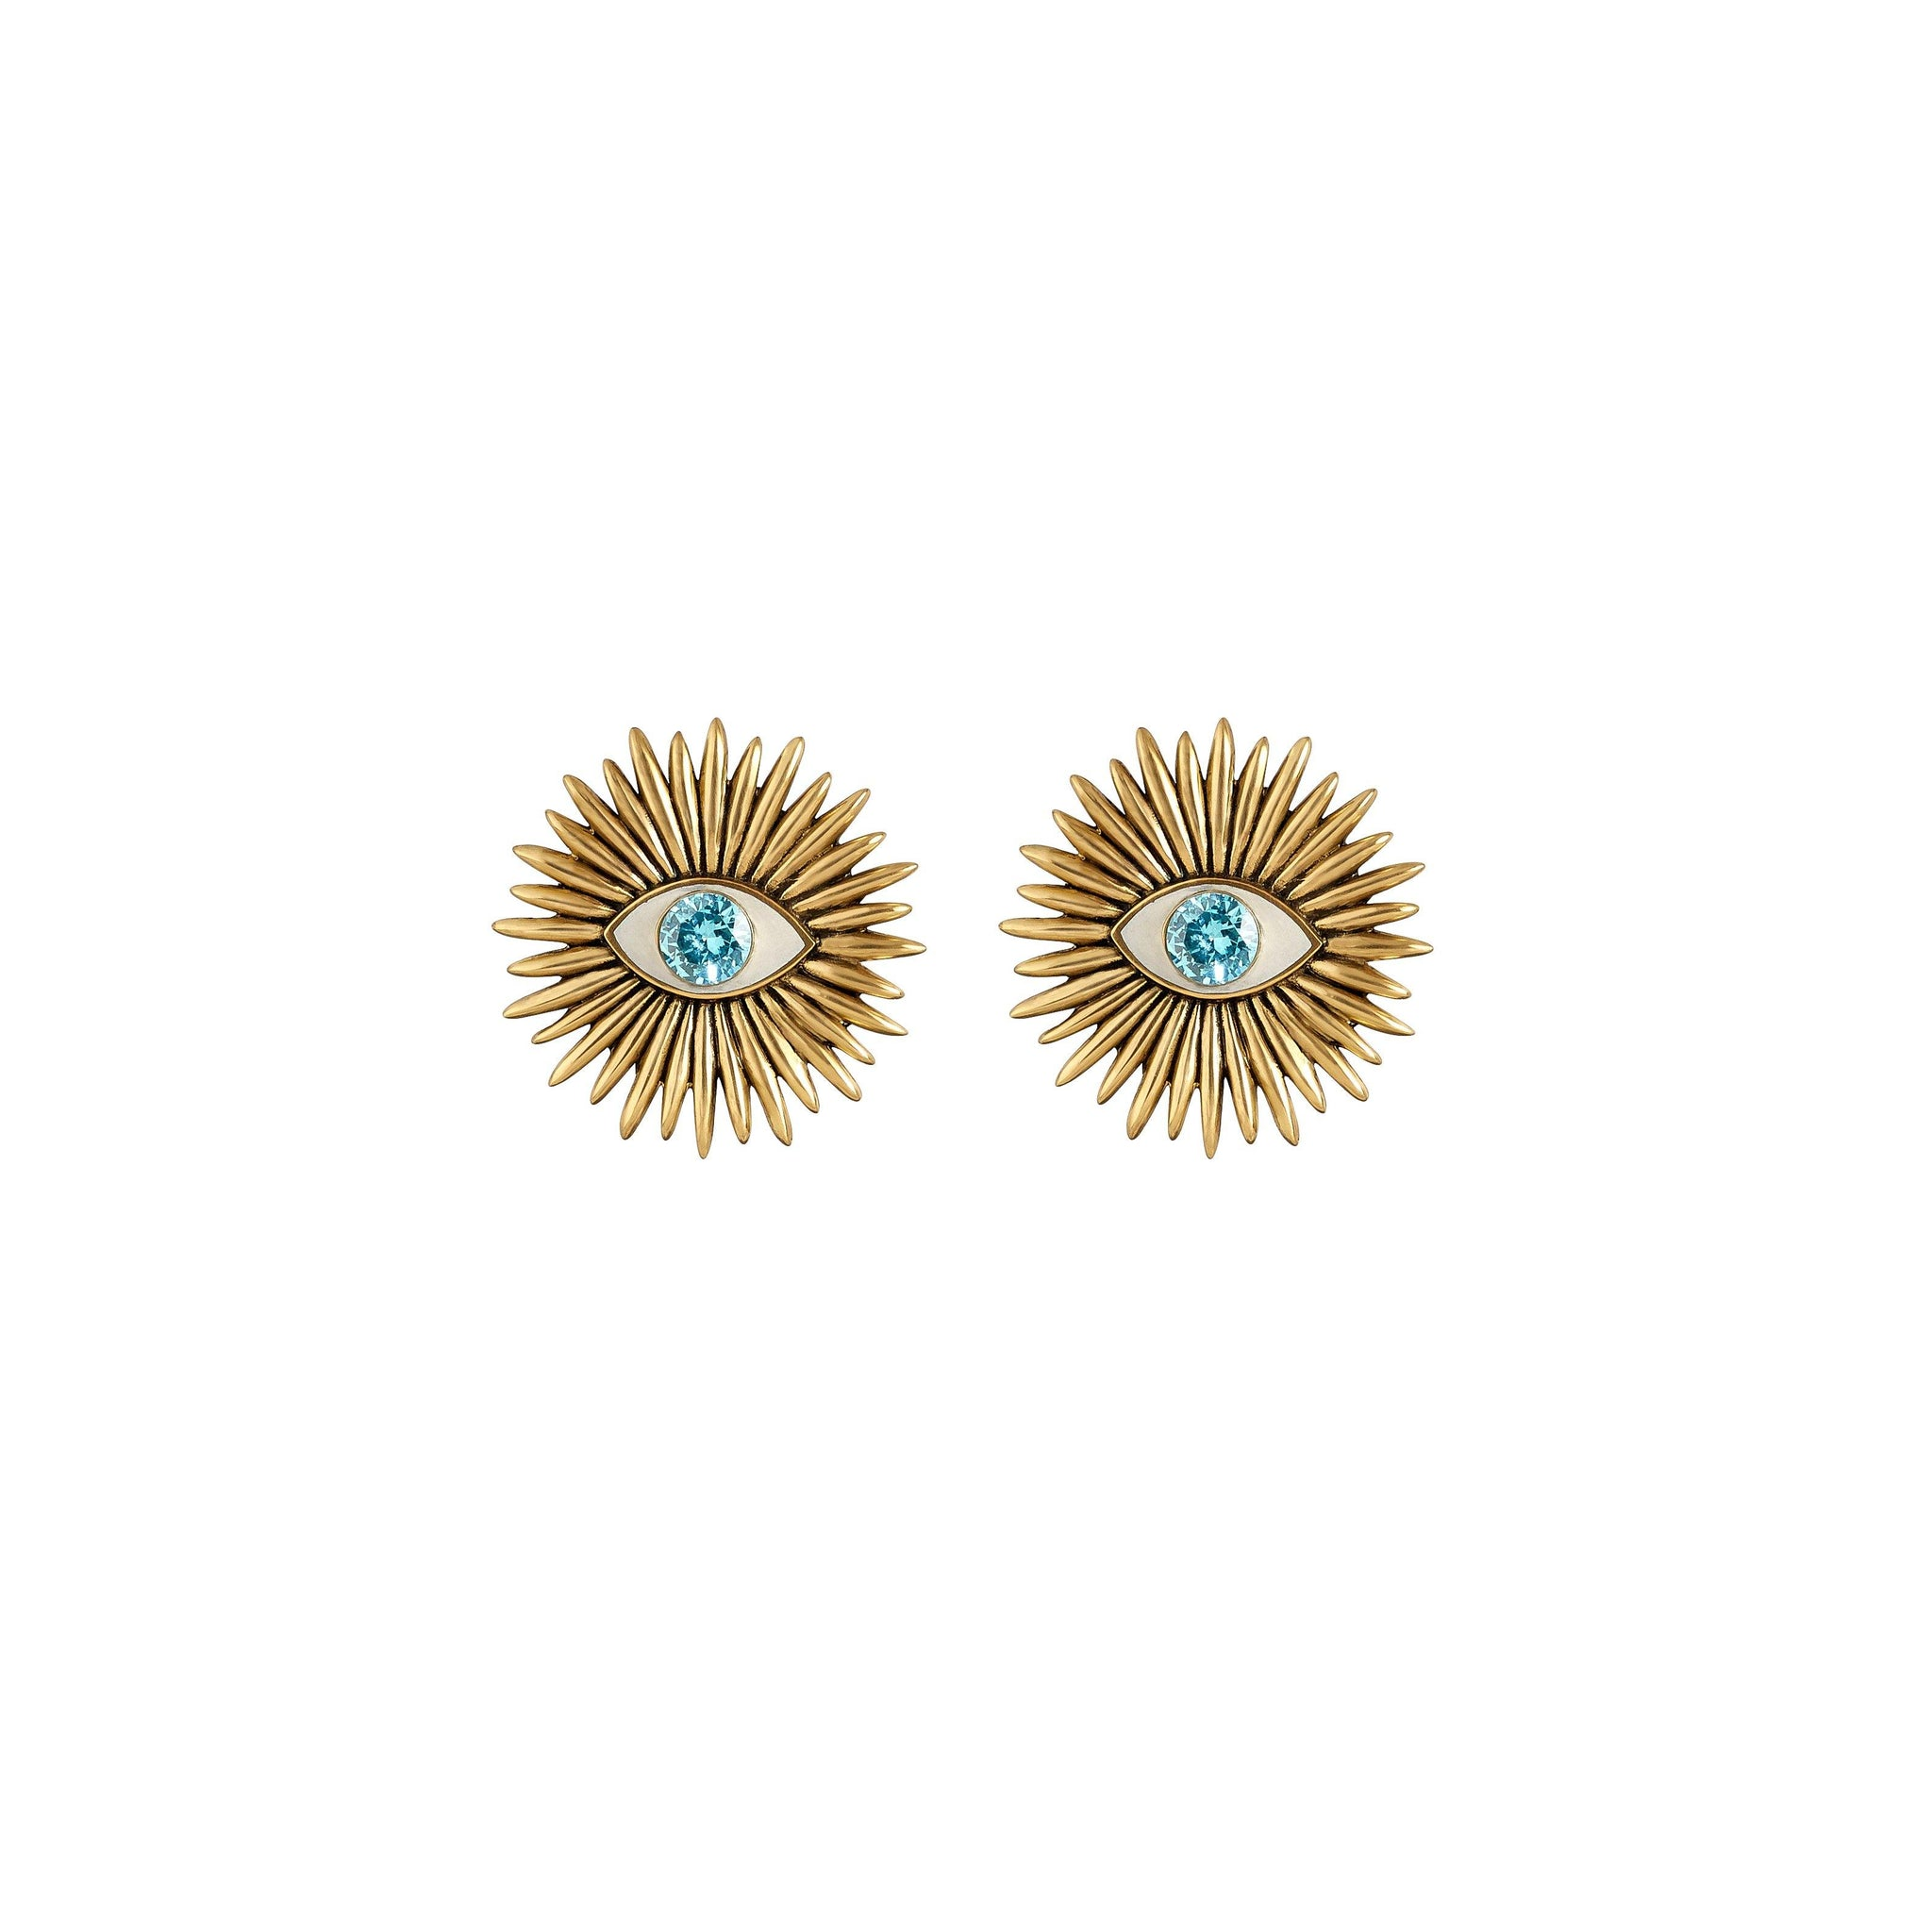 Solare Earrings - Kasha Bali